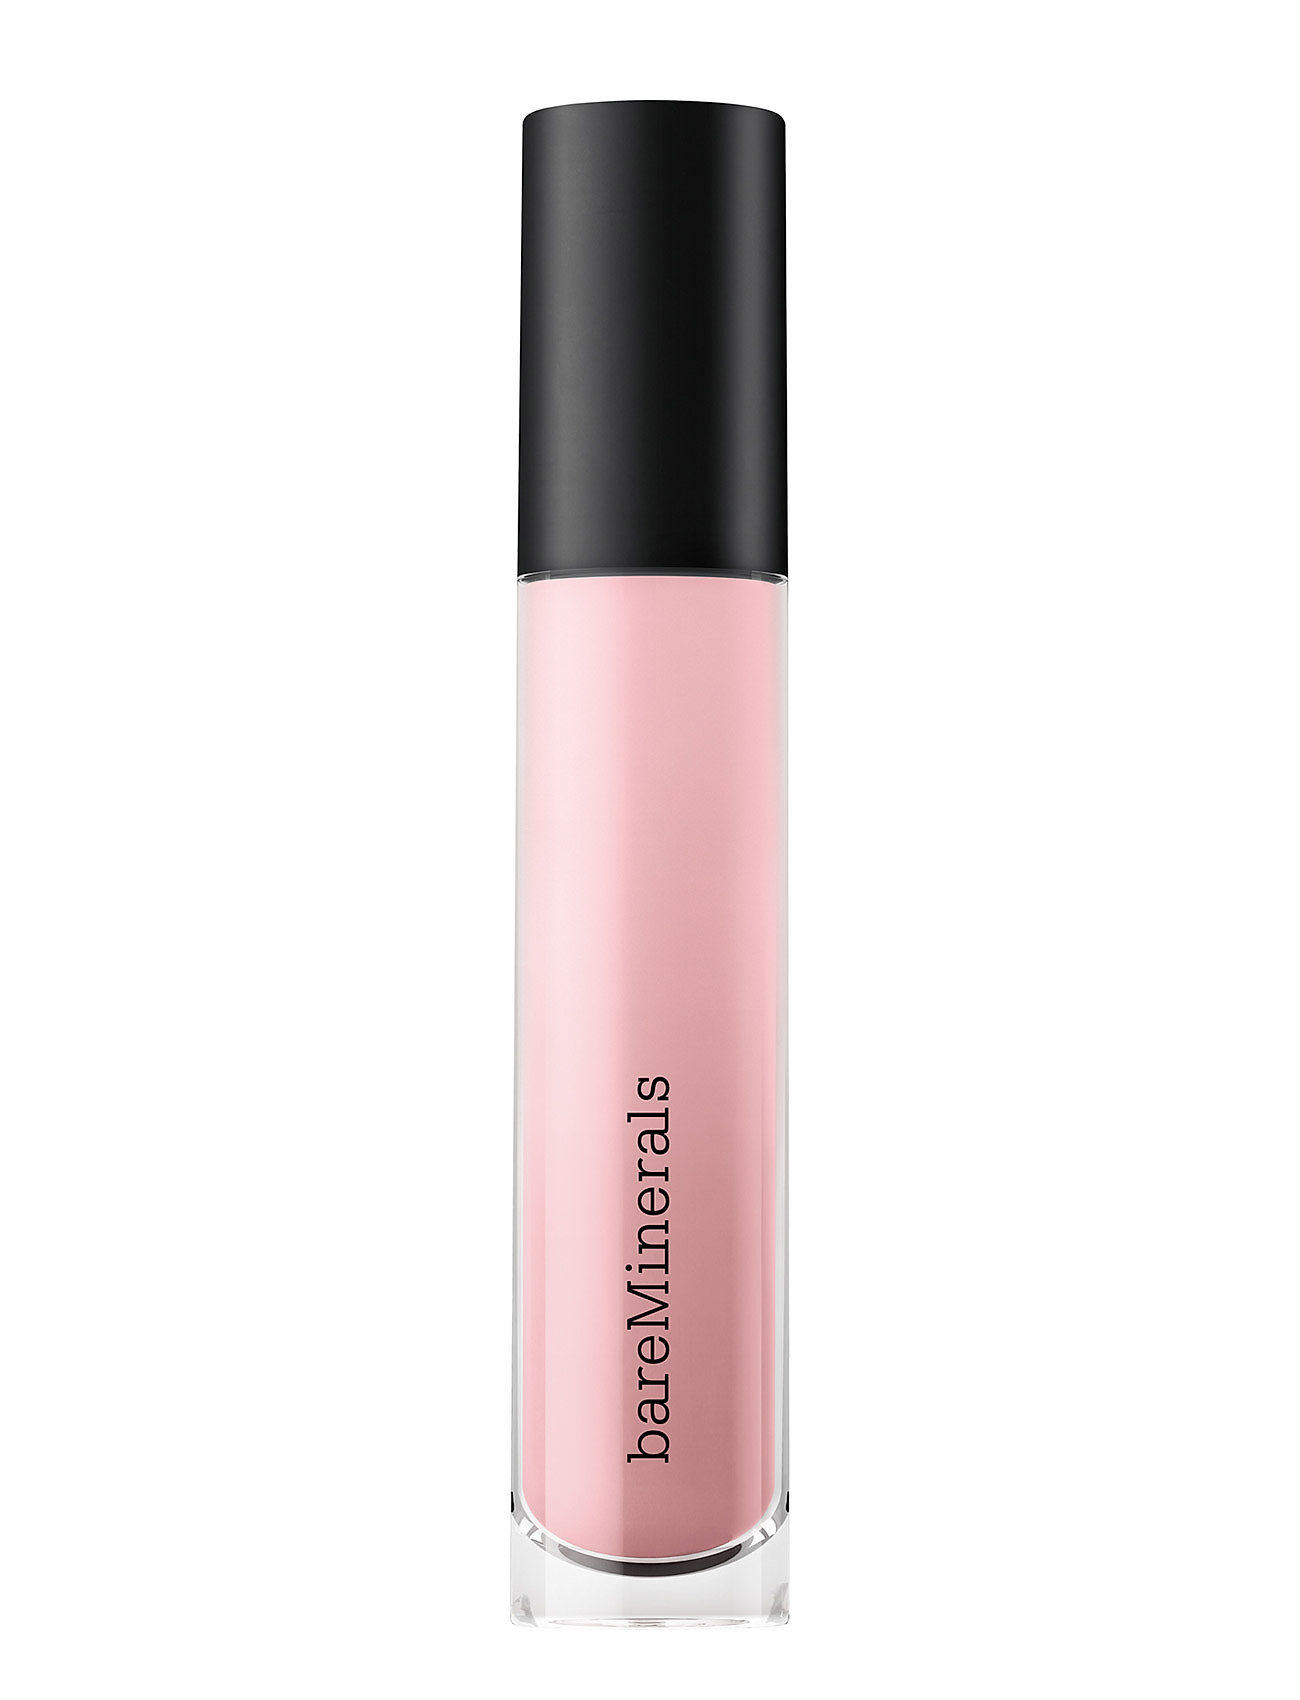 Image of Gen Nude Matte Liquid Lipcolor Læbestift Makeup Lyserød BareMinerals (3067521891)